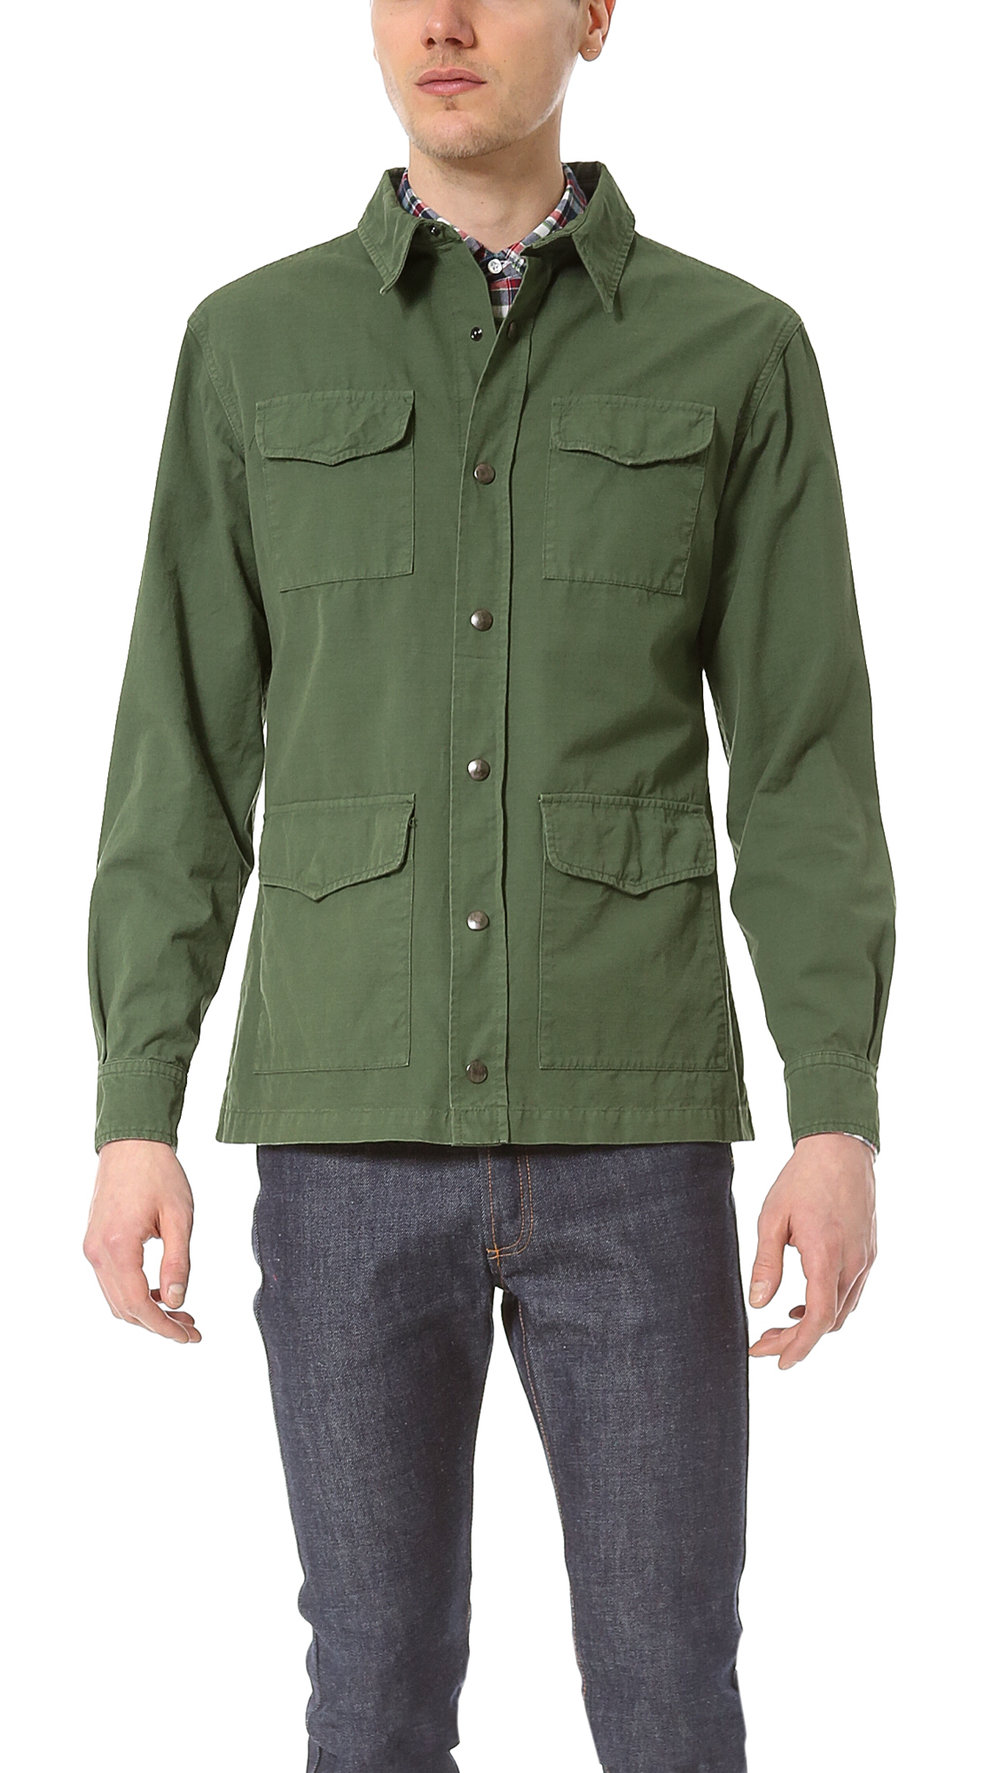 aspesi-green-vietnam-shirt-jacket-product-1-17960831-3-166460119-normal.jpeg